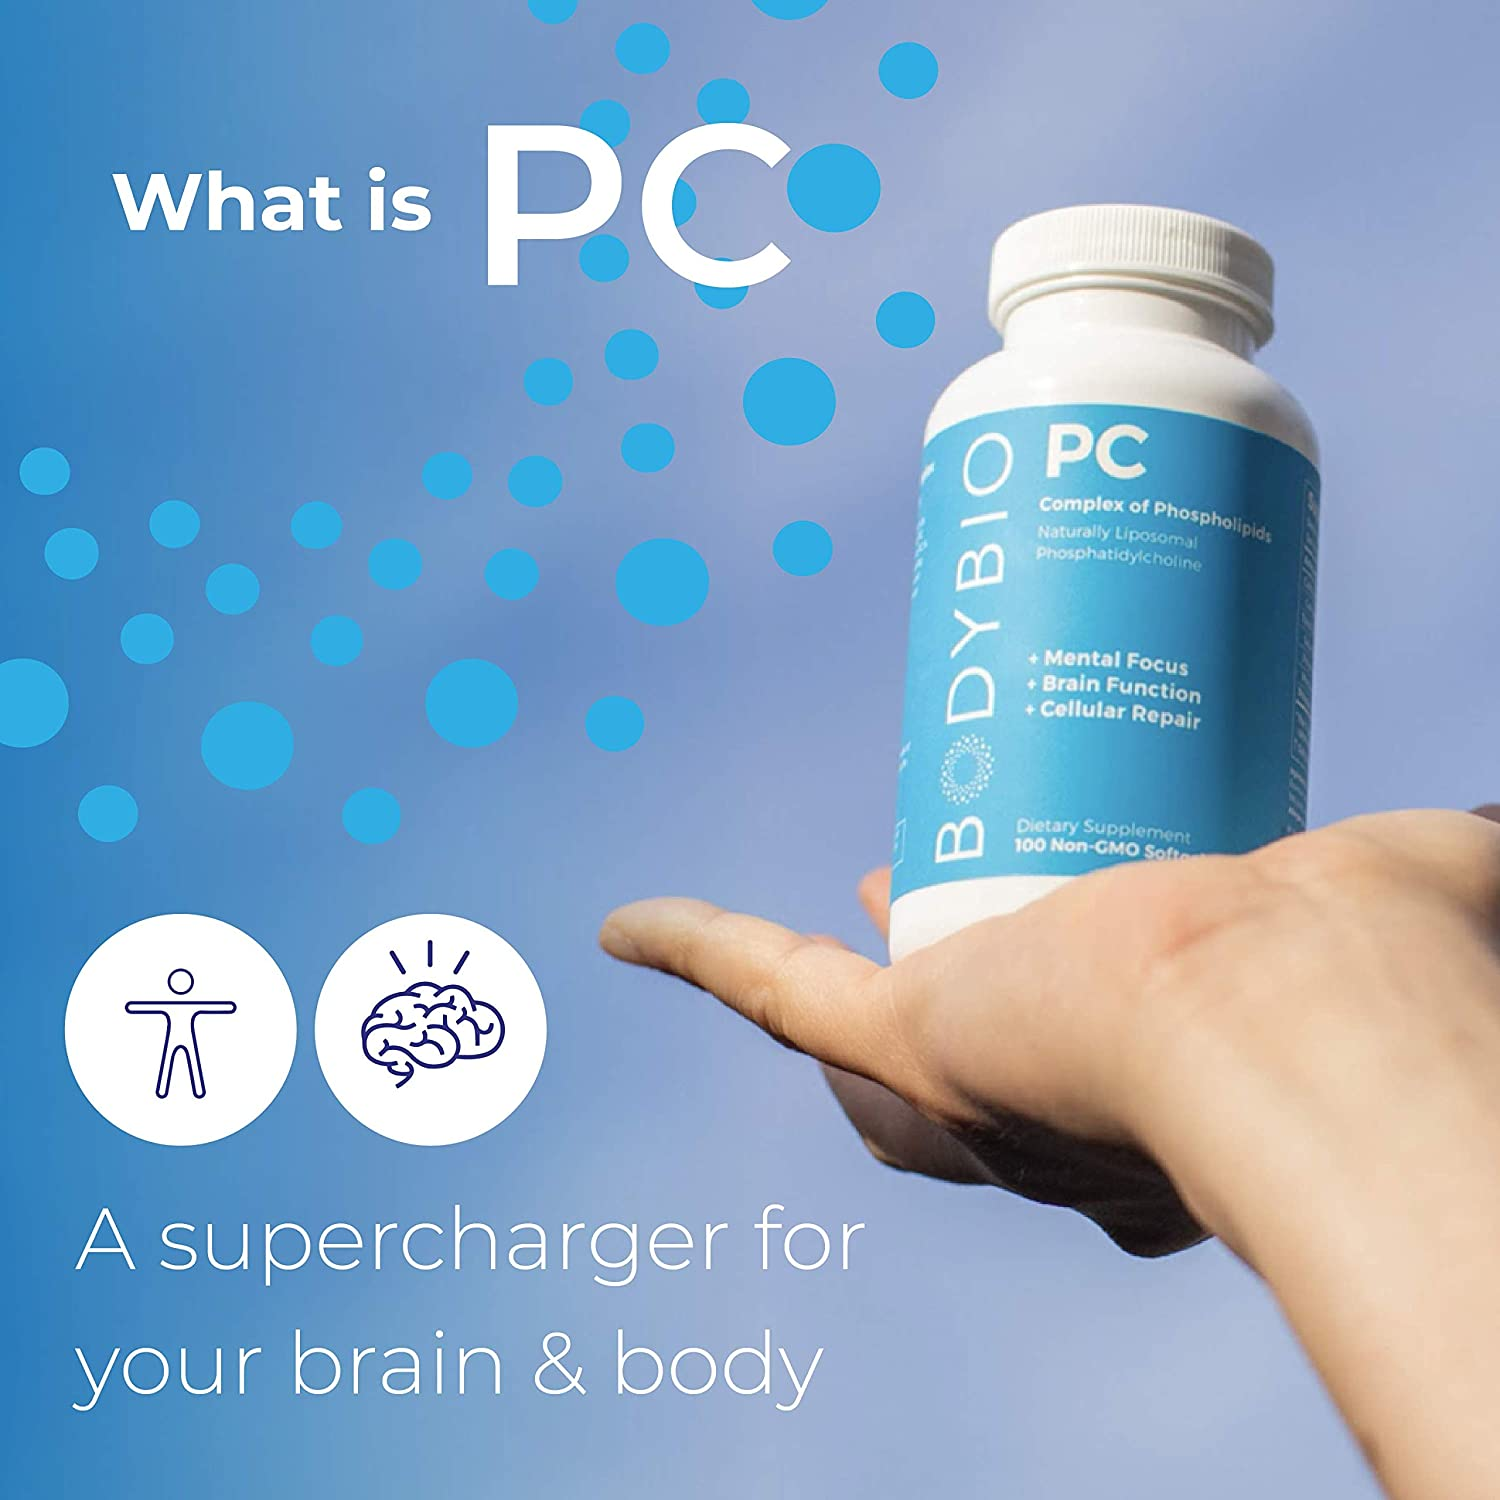 BodyBio PC Phosphatidylcholine + Phospholipids - 60 Tablet